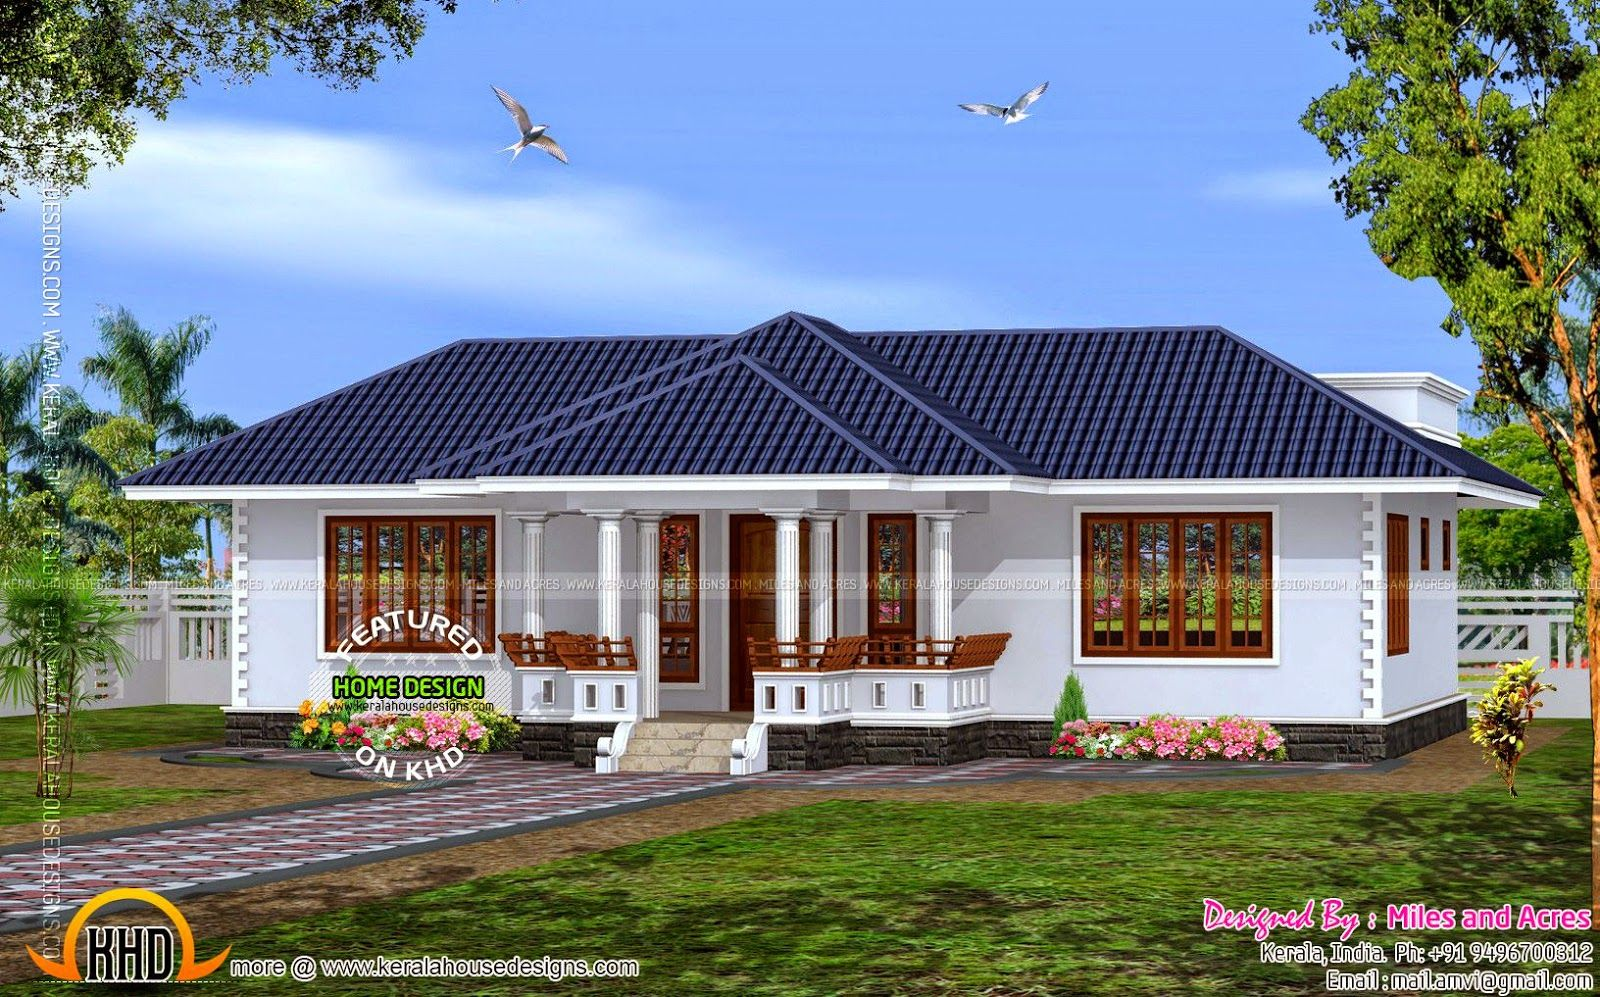 Perfect Design Single Home Designs House Plan Of Single Floor House Kerala Home  Design And Floor Plans Best Single Person Home Designs